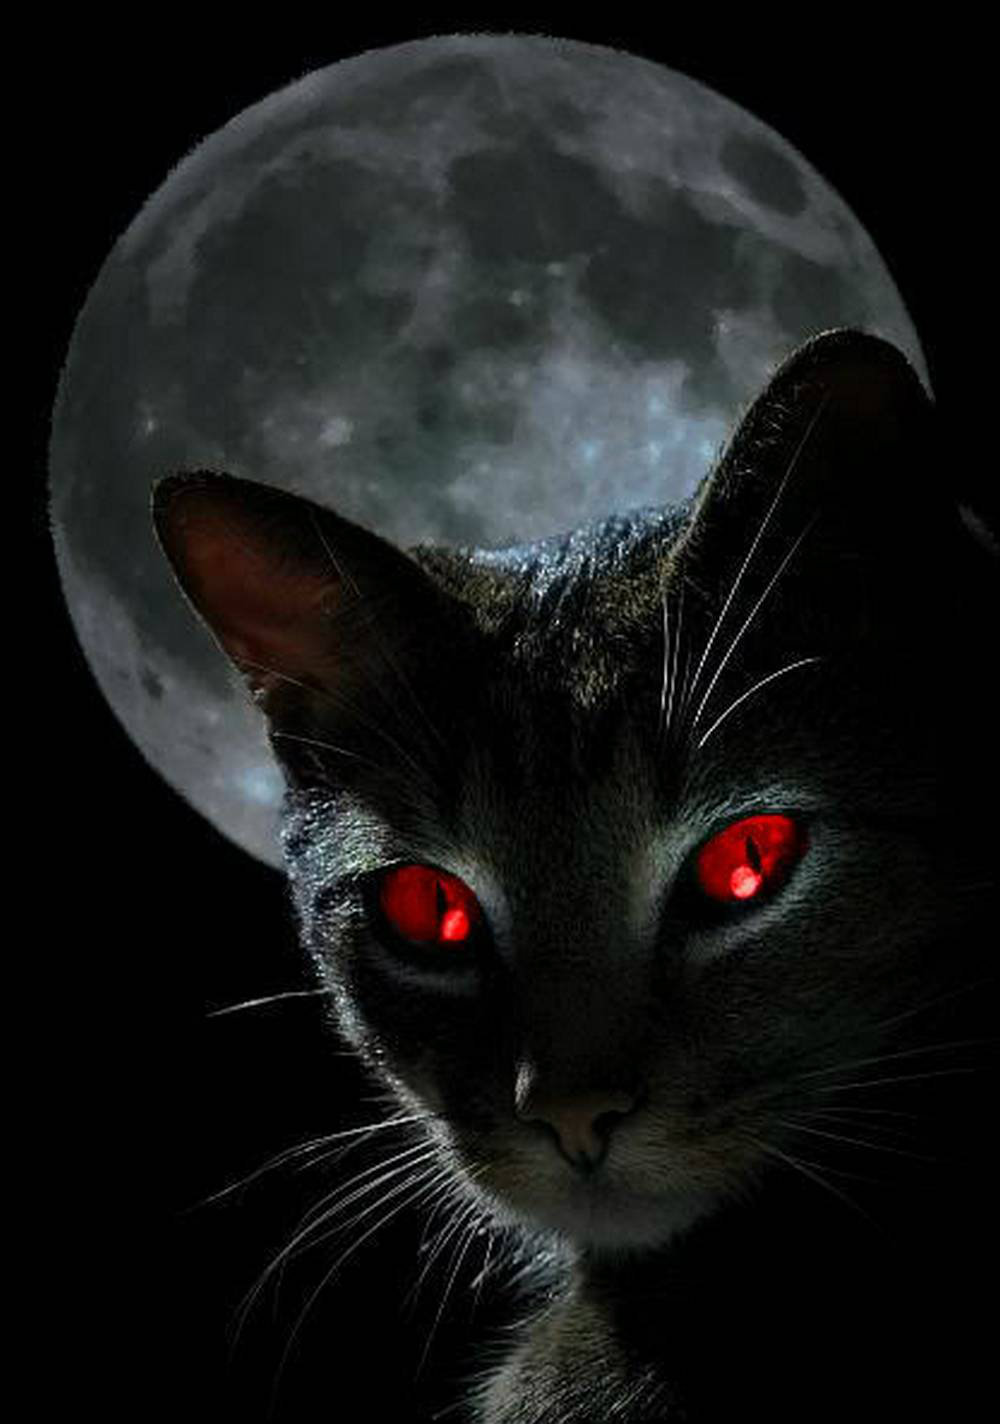 image - black-cat-with-red-eyes-horror-wallpaper | animal jam